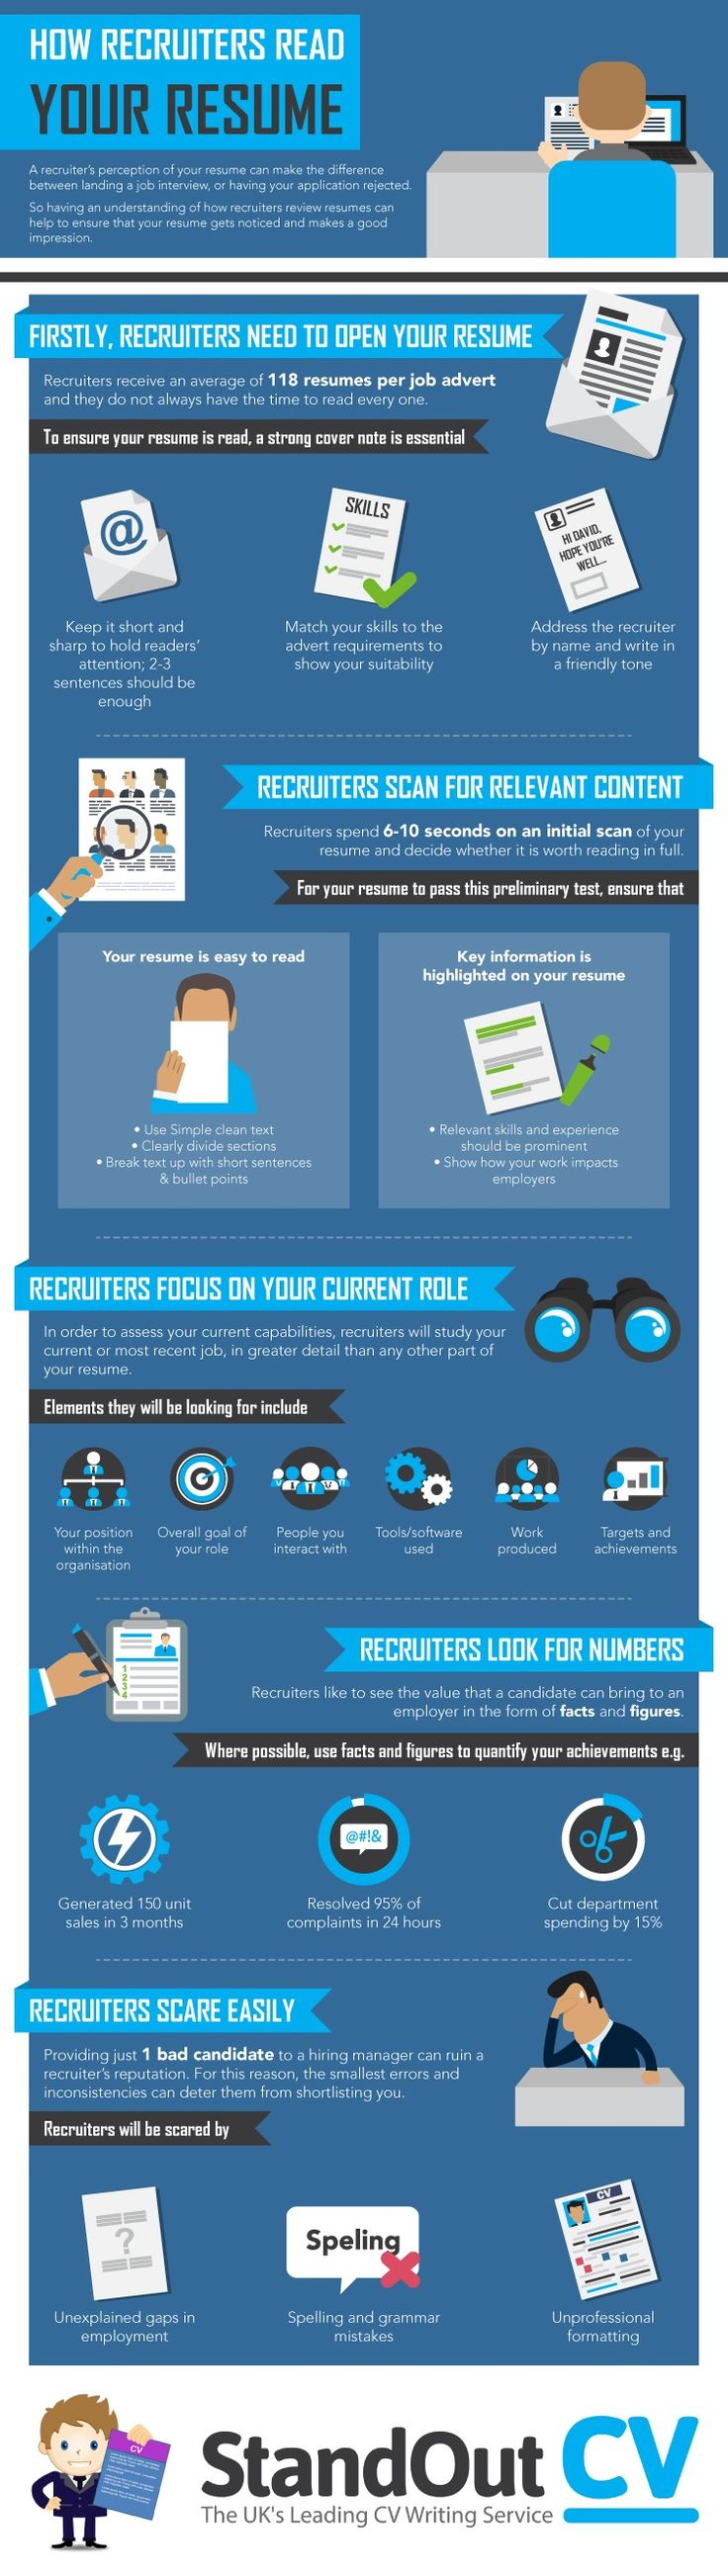 How Recruiters Read Your Resume